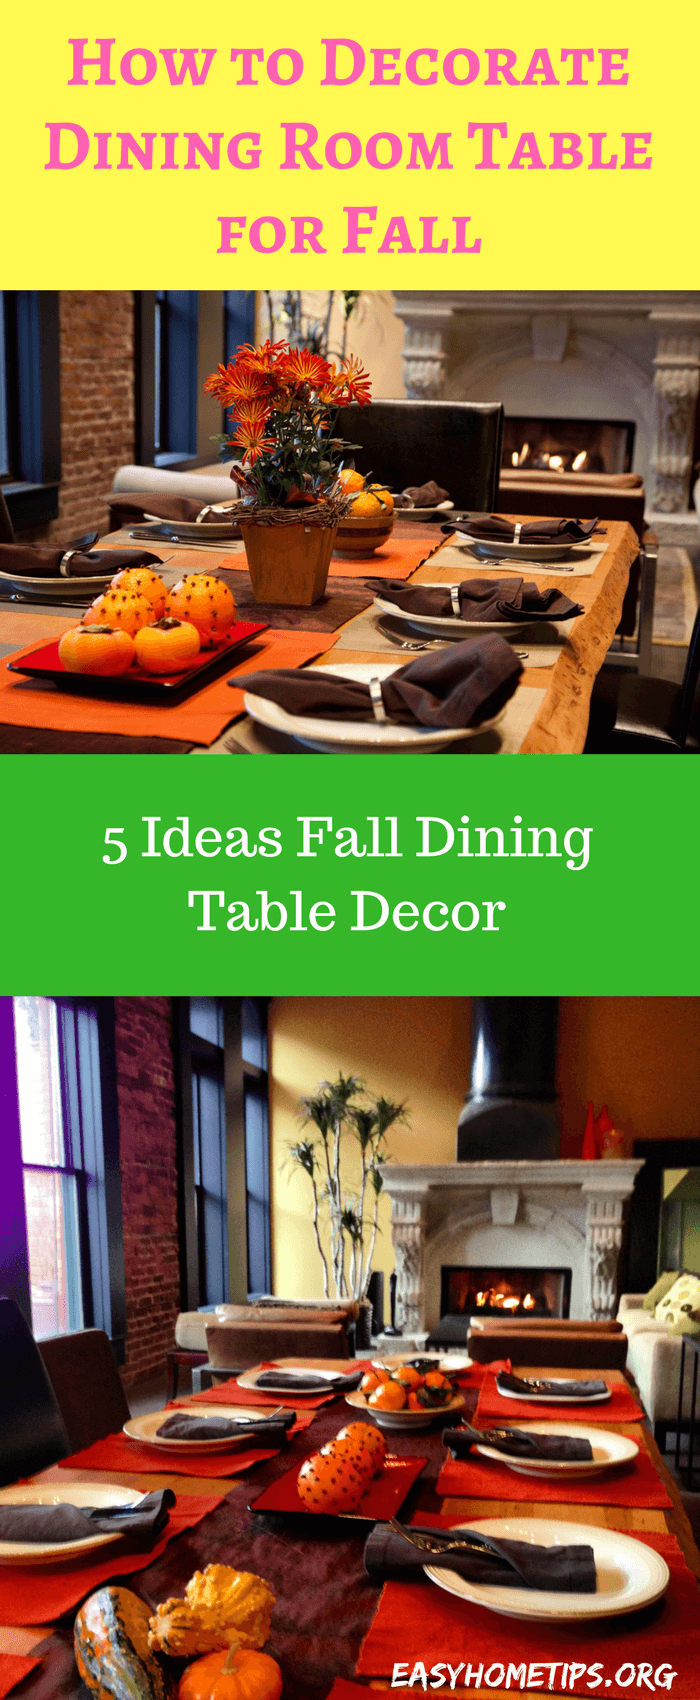 How to Decorate Dining Room Table for Fall. 5 Simple Ideas